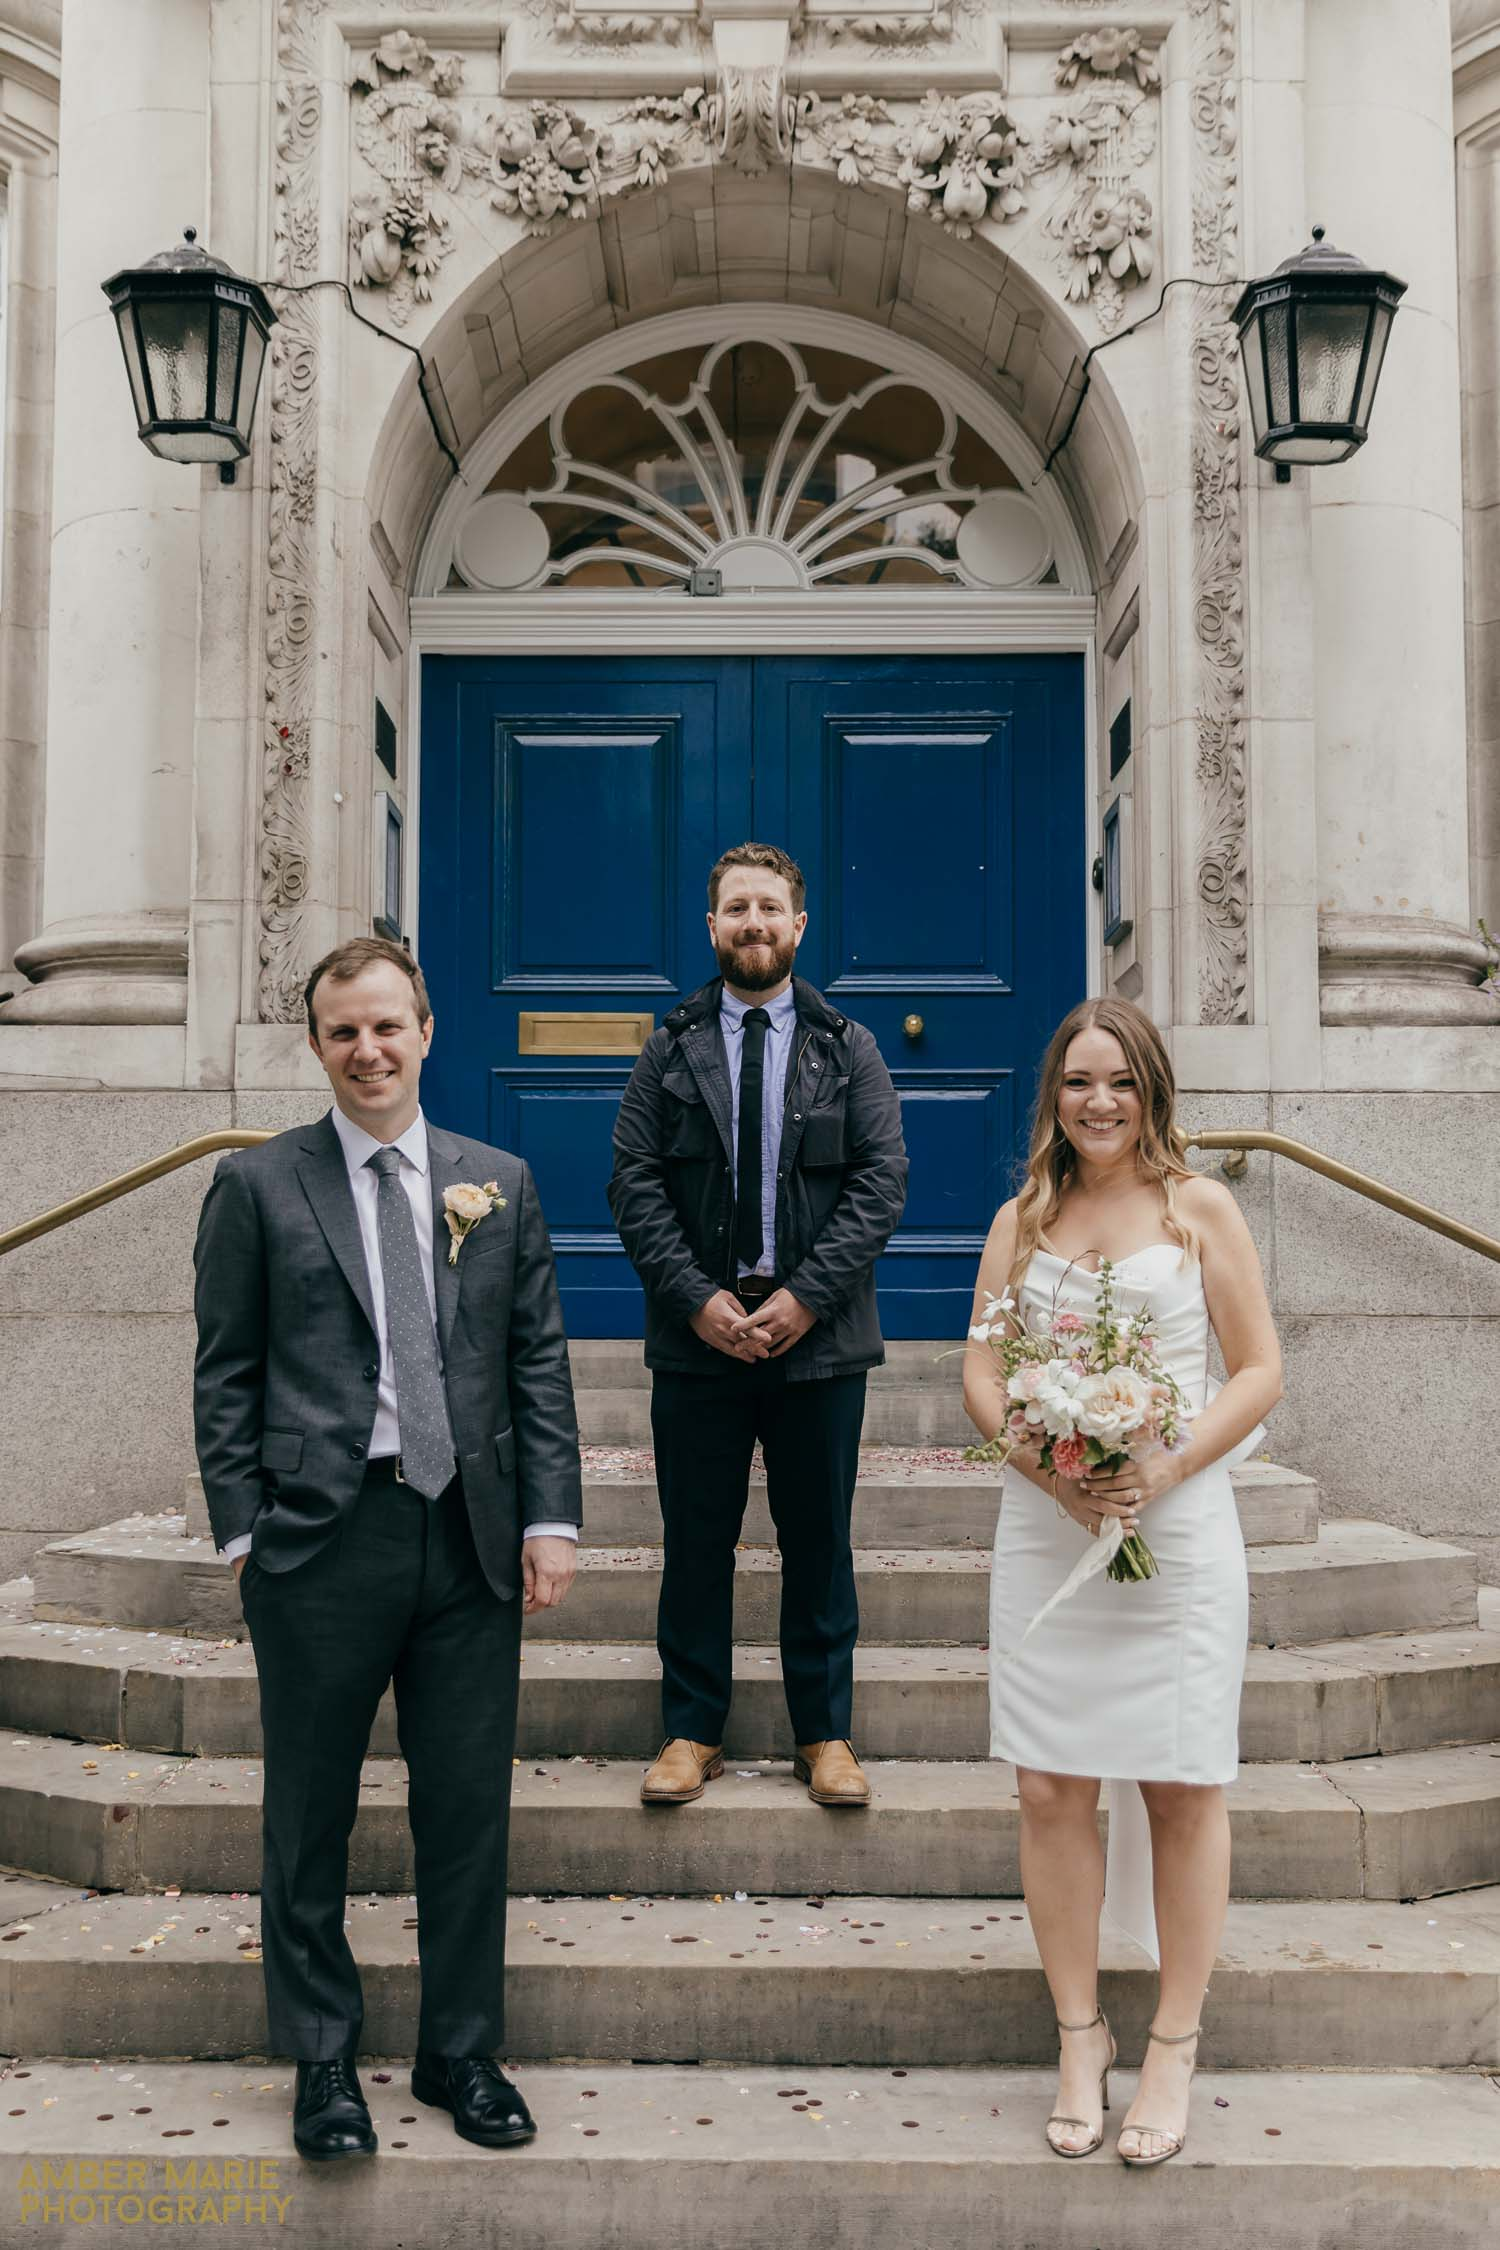 Socially distanced wedding photography by Contemporary London Wedding Photographer